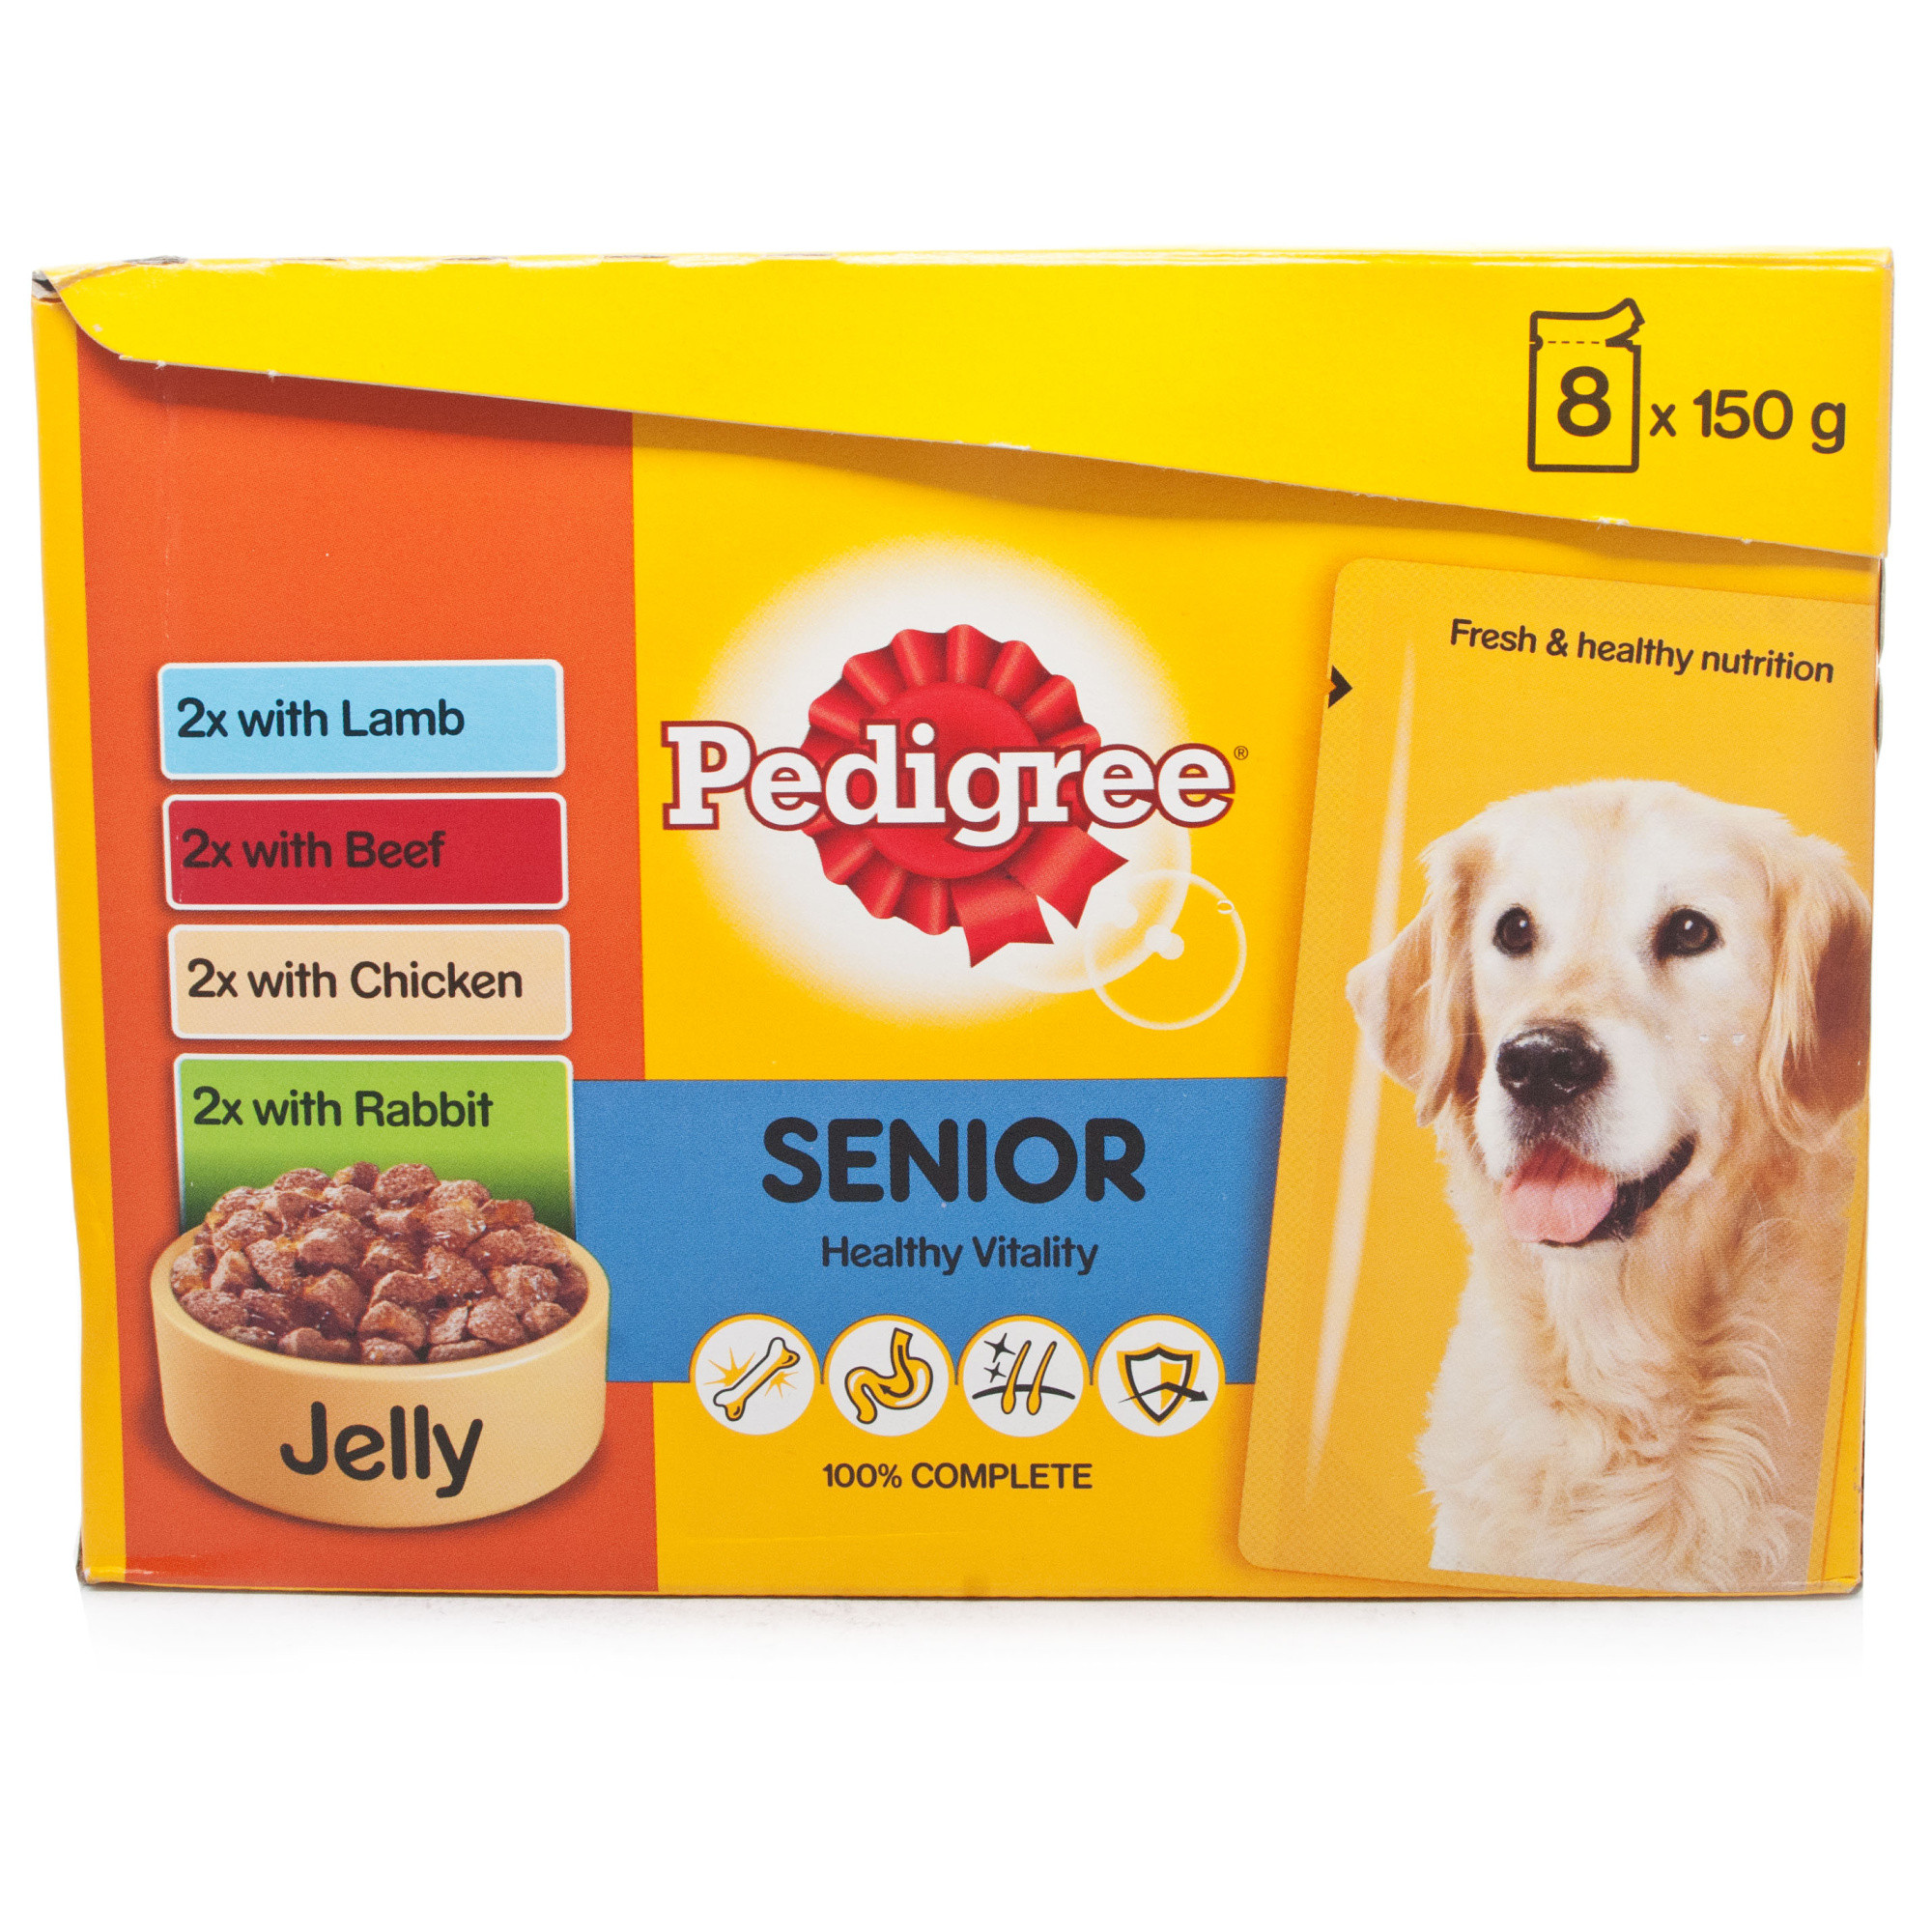 Pedigree Pouch Senior Jelly 8 Pack